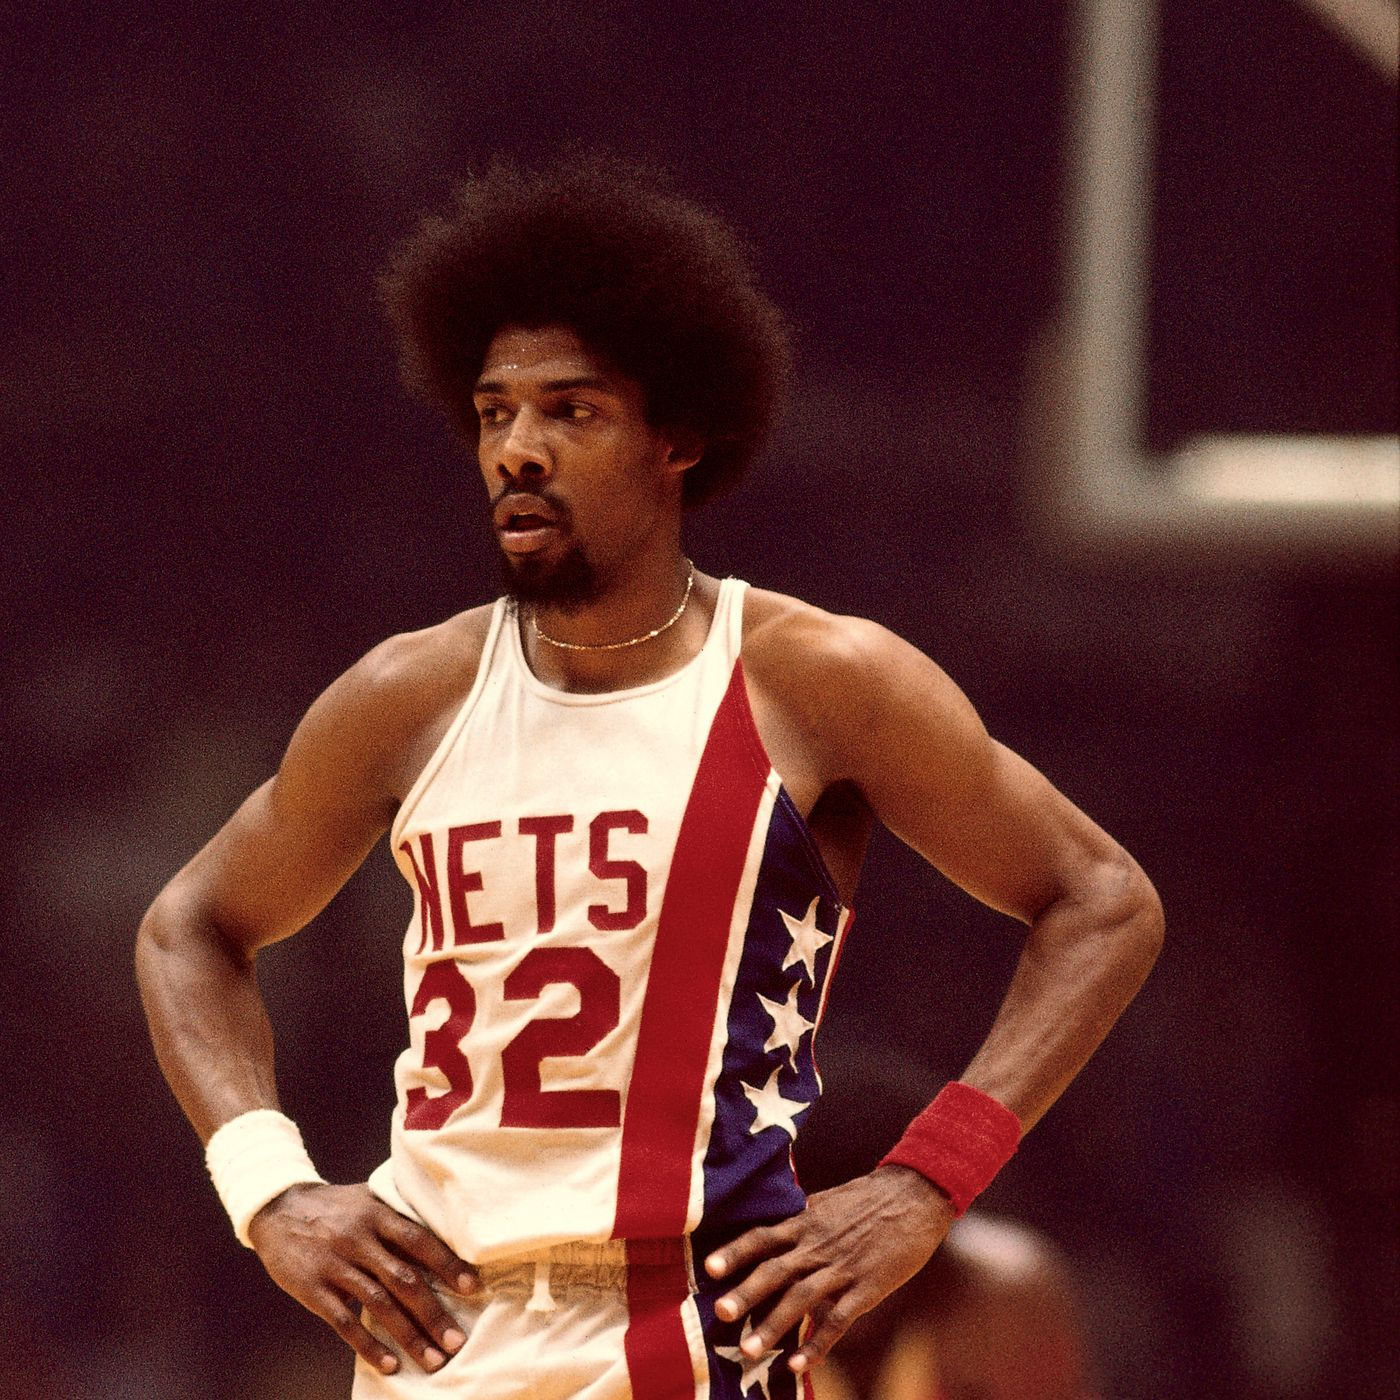 Is the return of Dr. J is in the wings? - NetsDaily